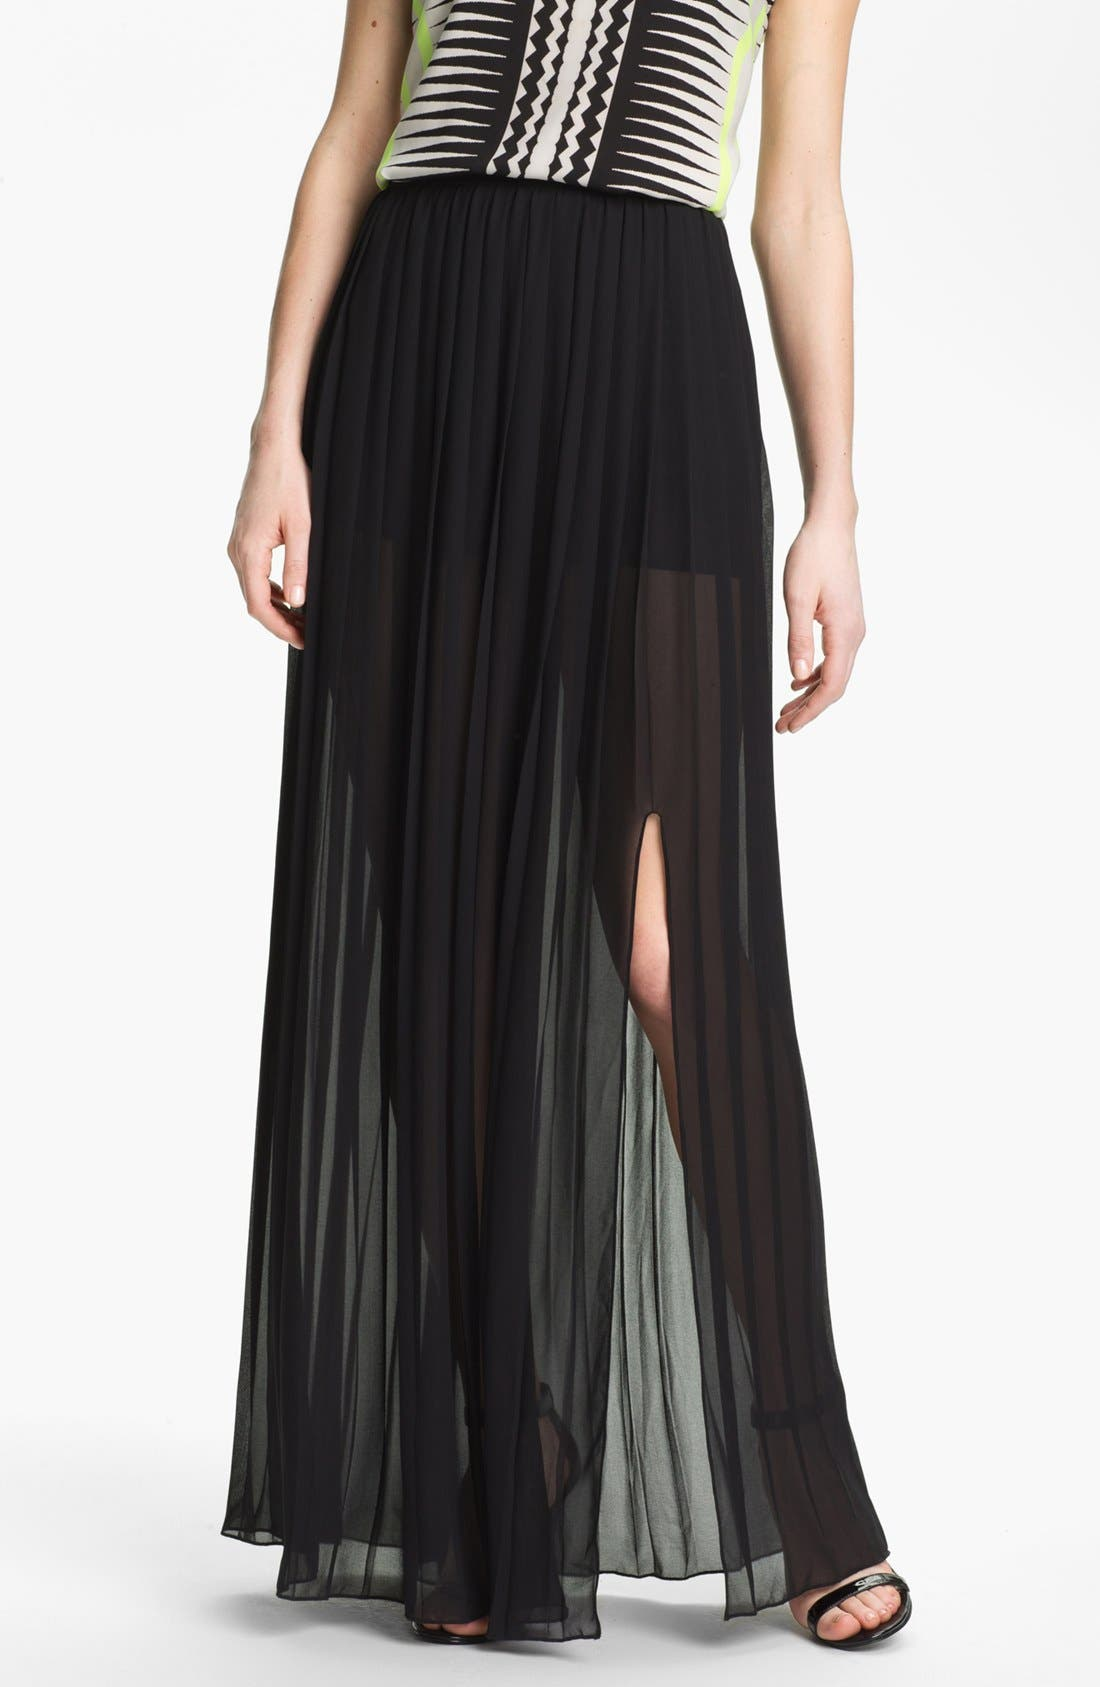 Alternate Image 1 Selected - Vince Camuto Pleat Maxi Skirt